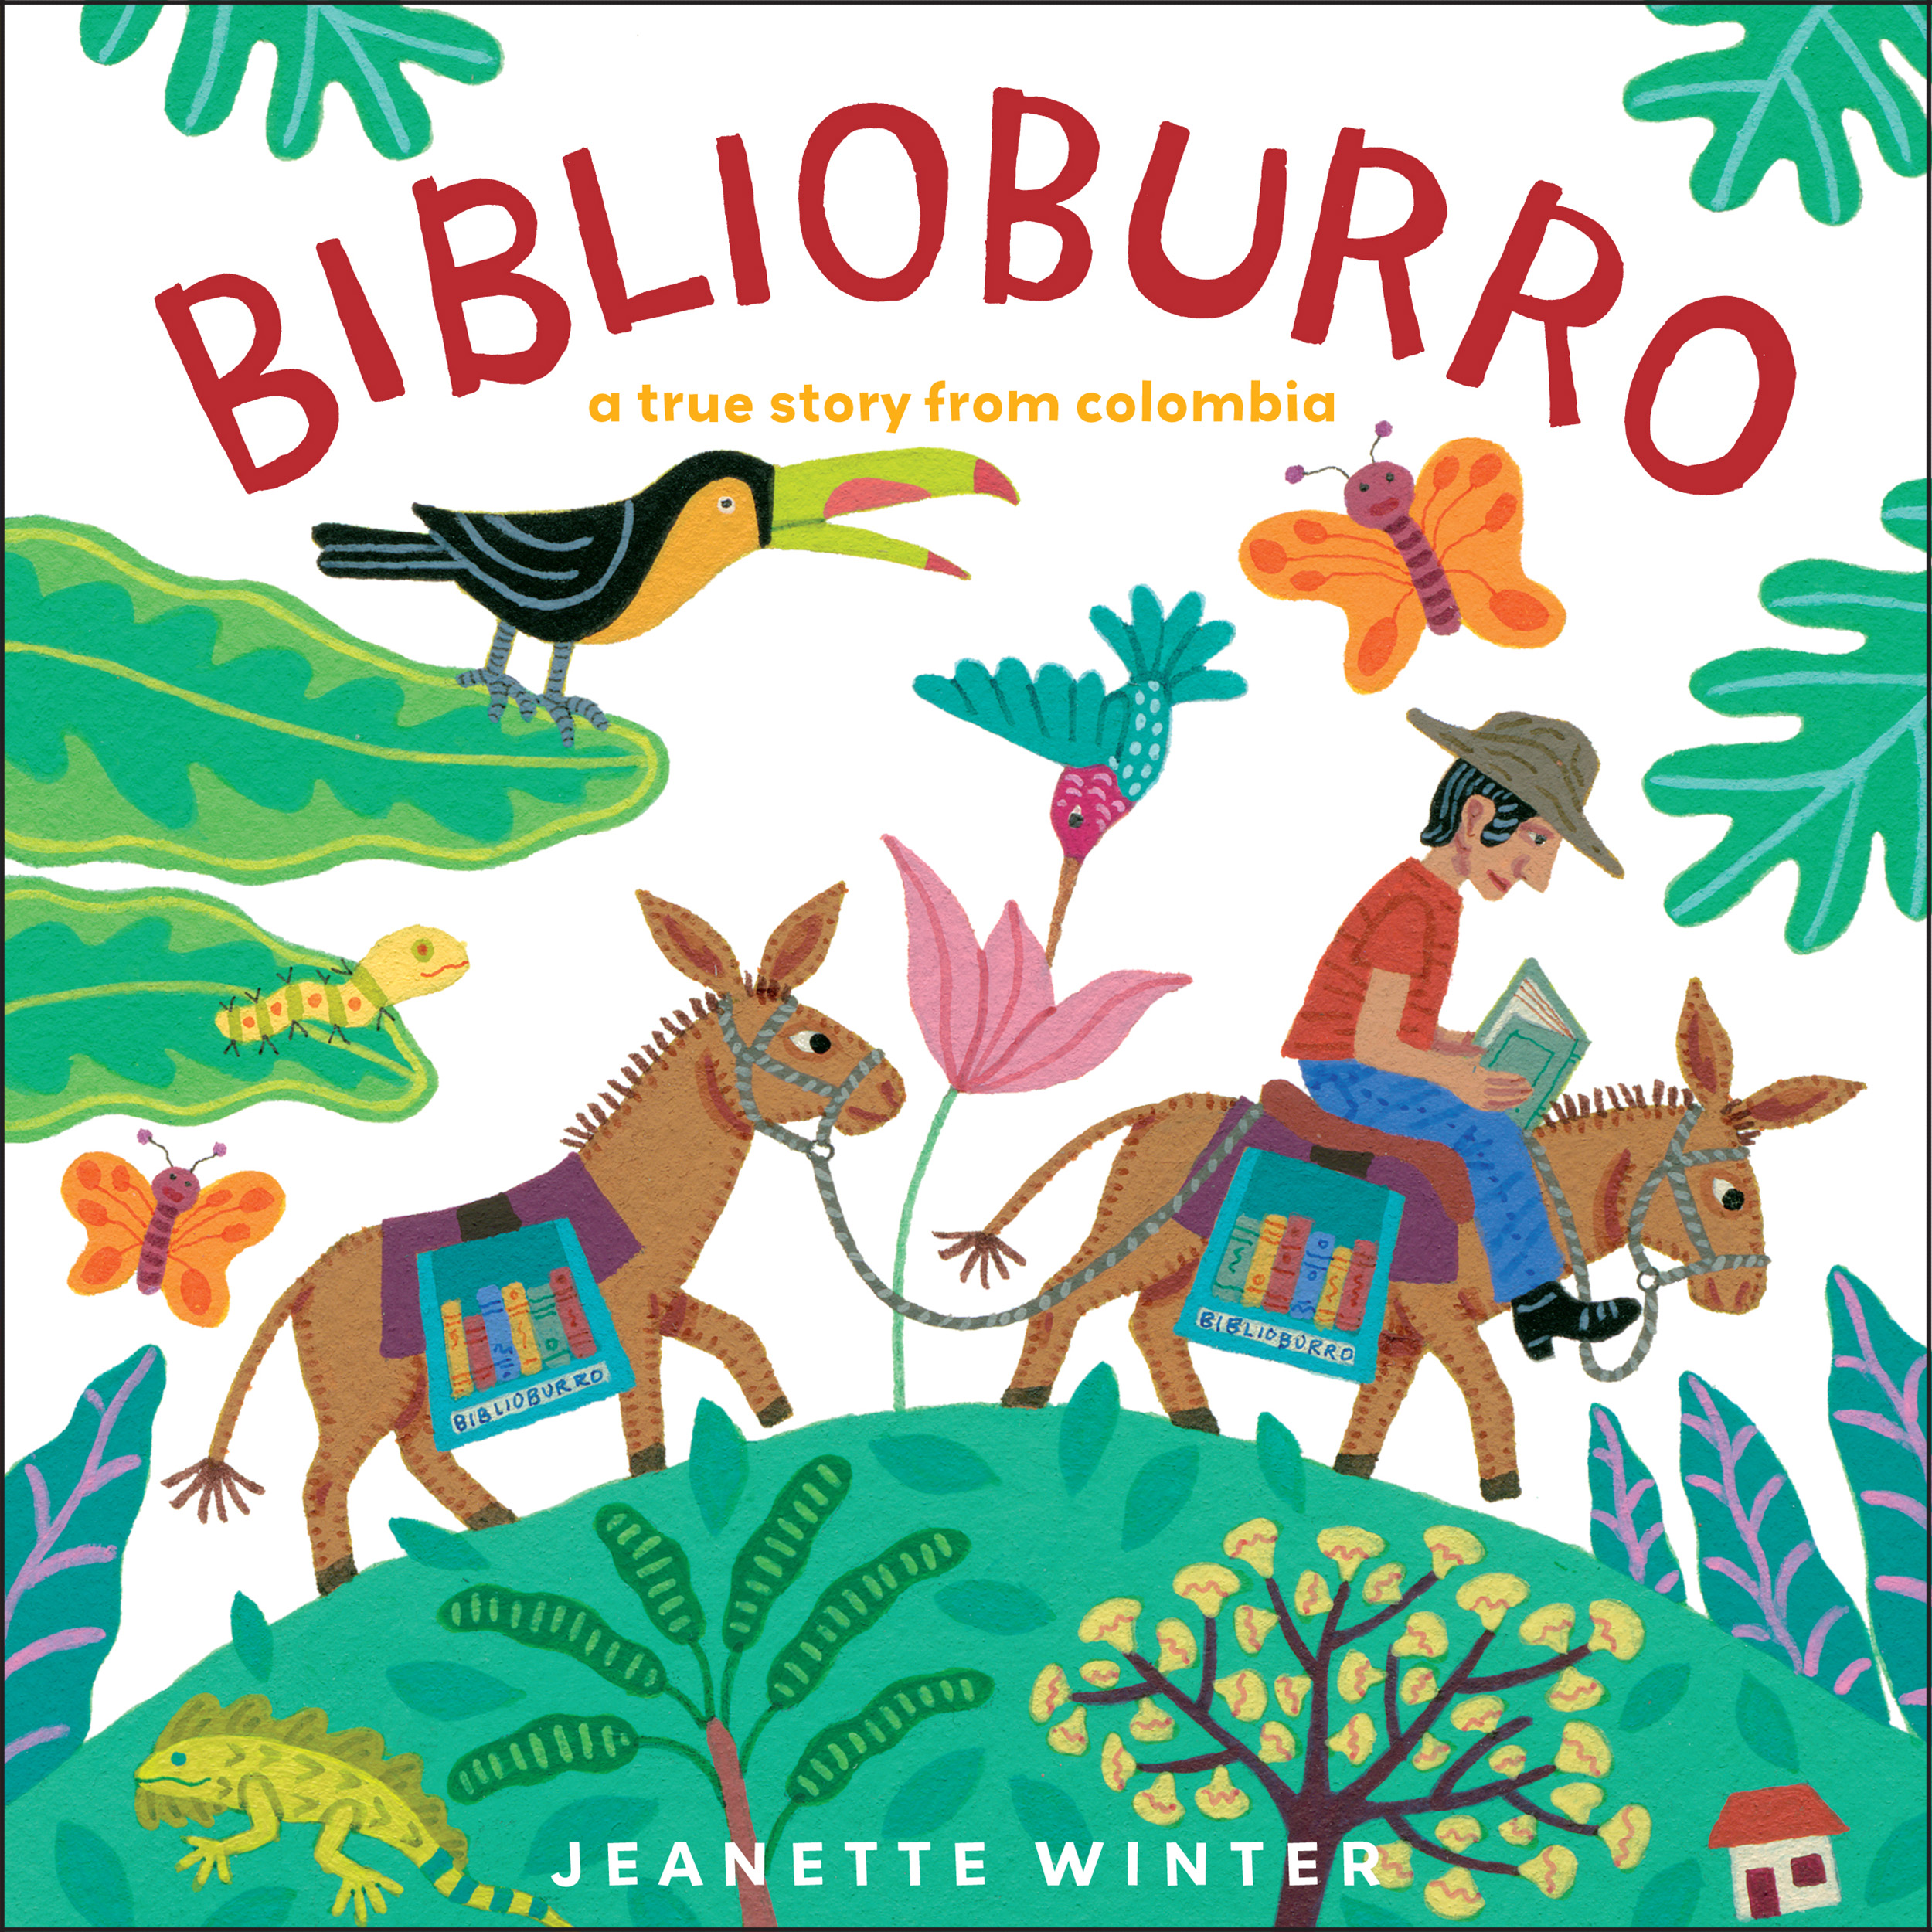 Book Cover Design Child : Biblioburro book by jeanette winter official publisher